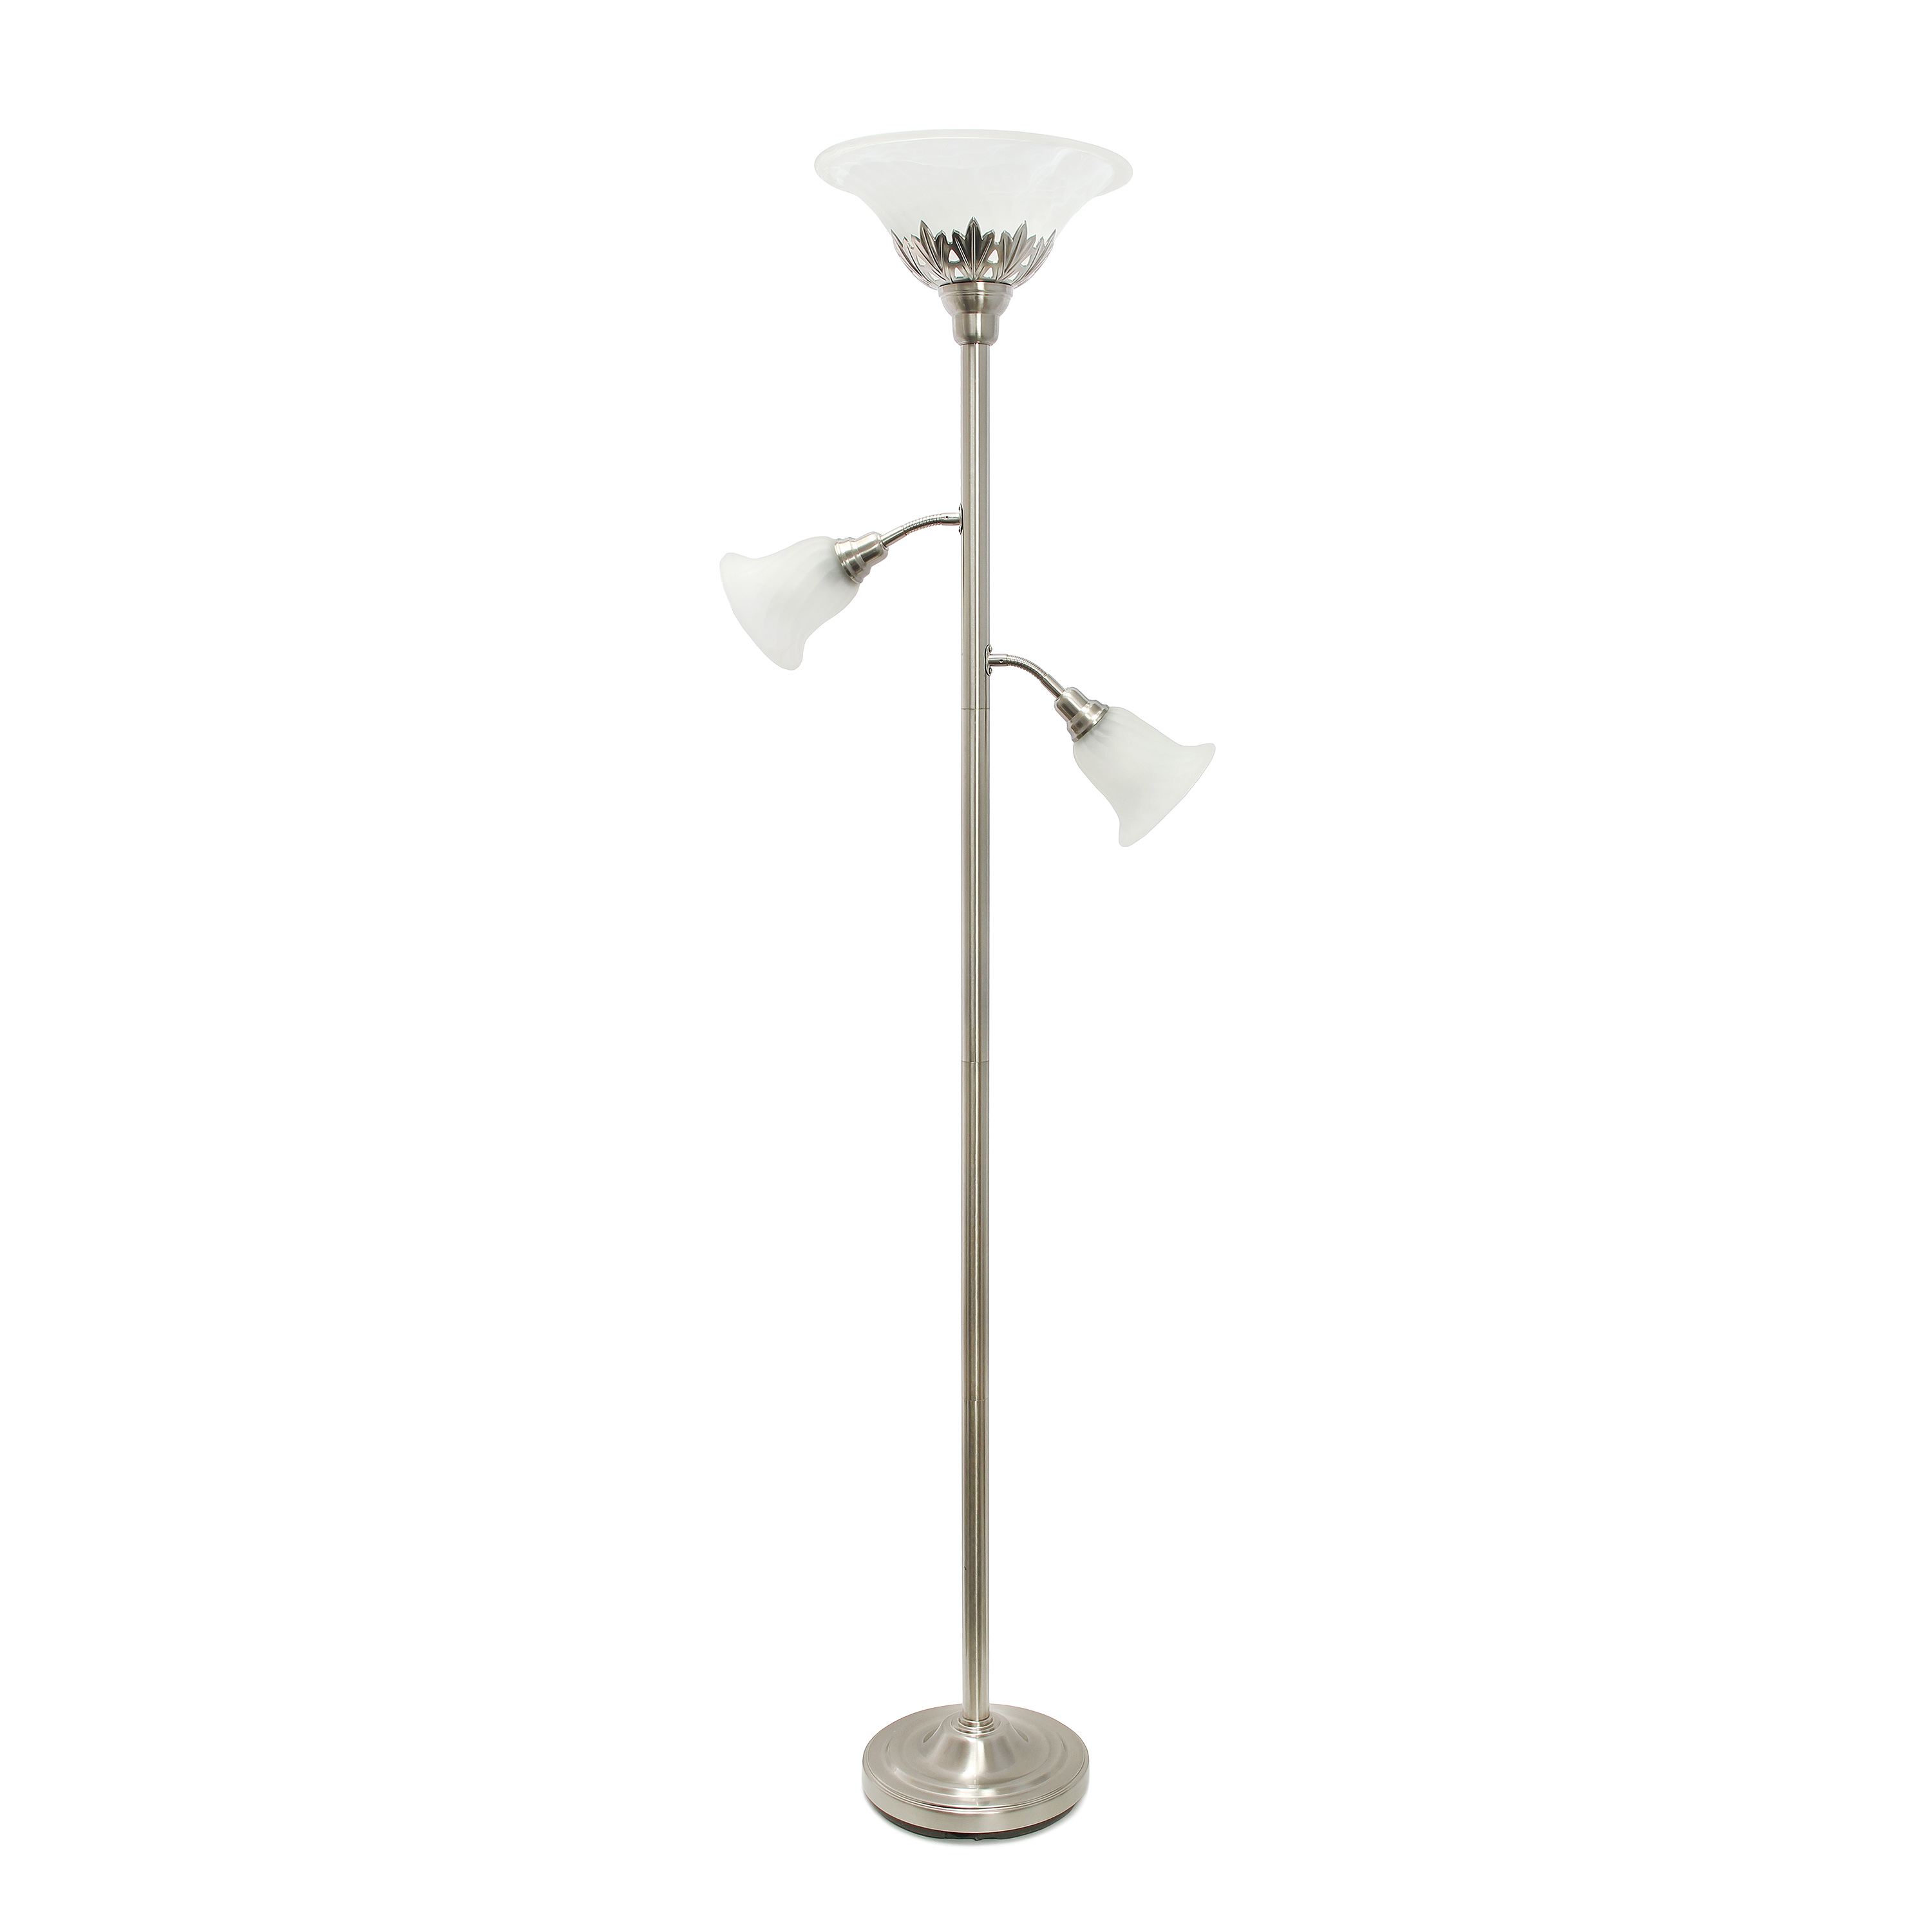 Elegant Designs 3 Light Floor Lamp with Scalloped Glass Shades, Brushed Nickel